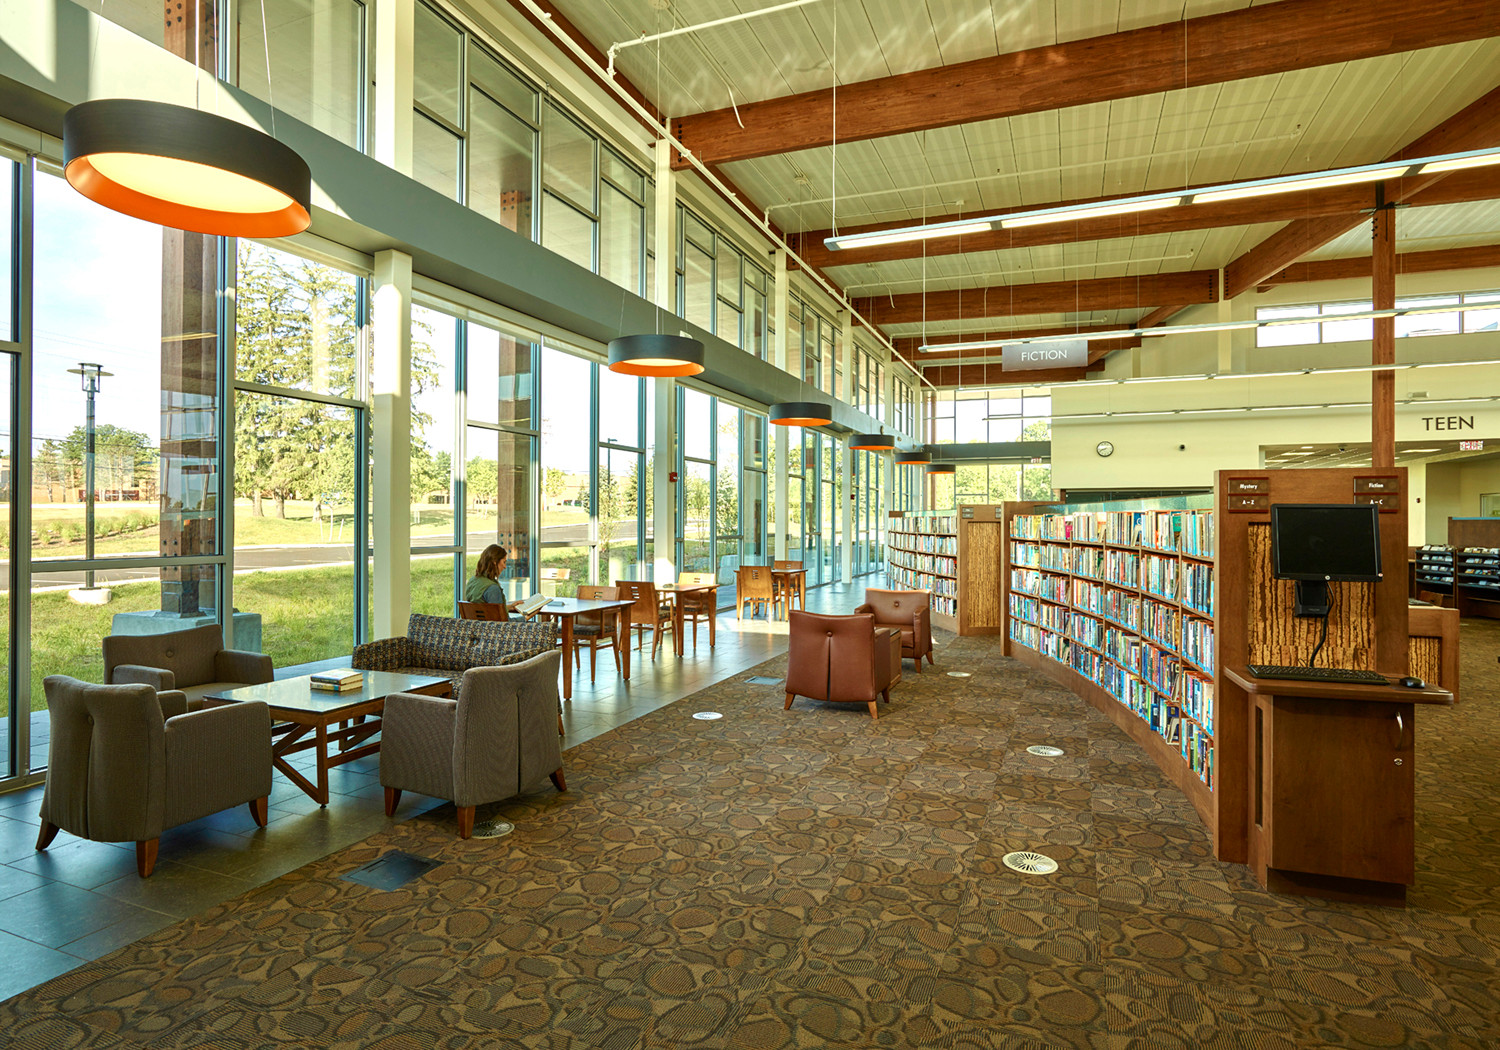 08_CCPL Orange Branch Library.jpg